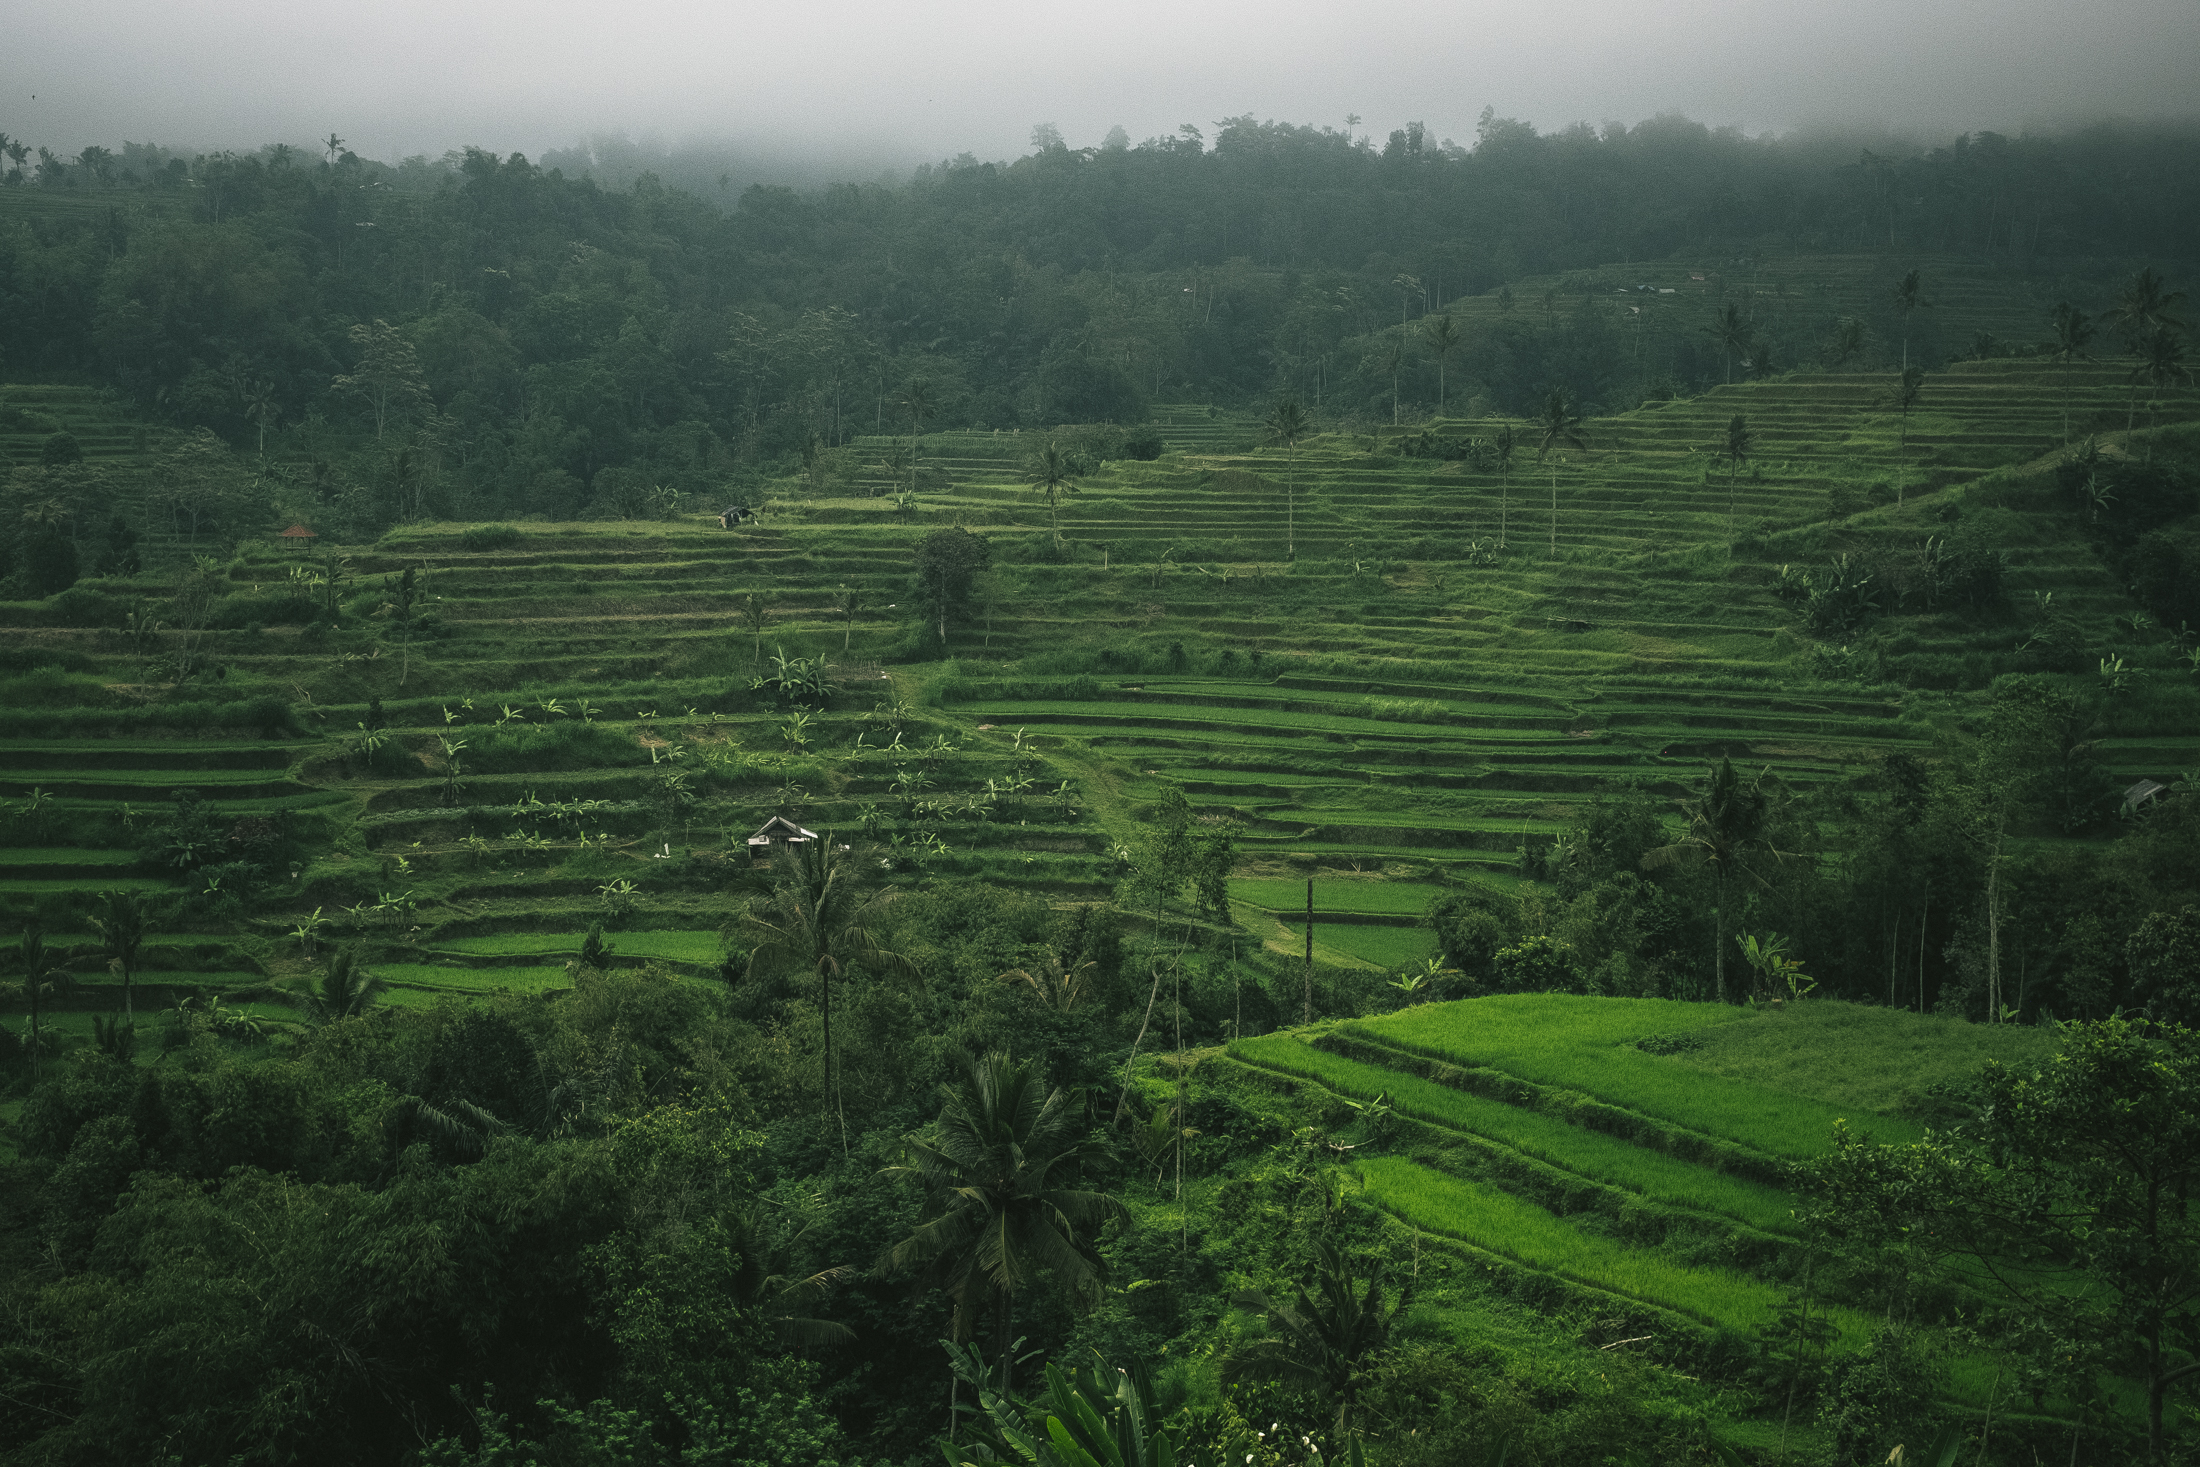 Jatiluwih - At the foot of Mount Batukaru is the largest rice terrace in Indonesia.